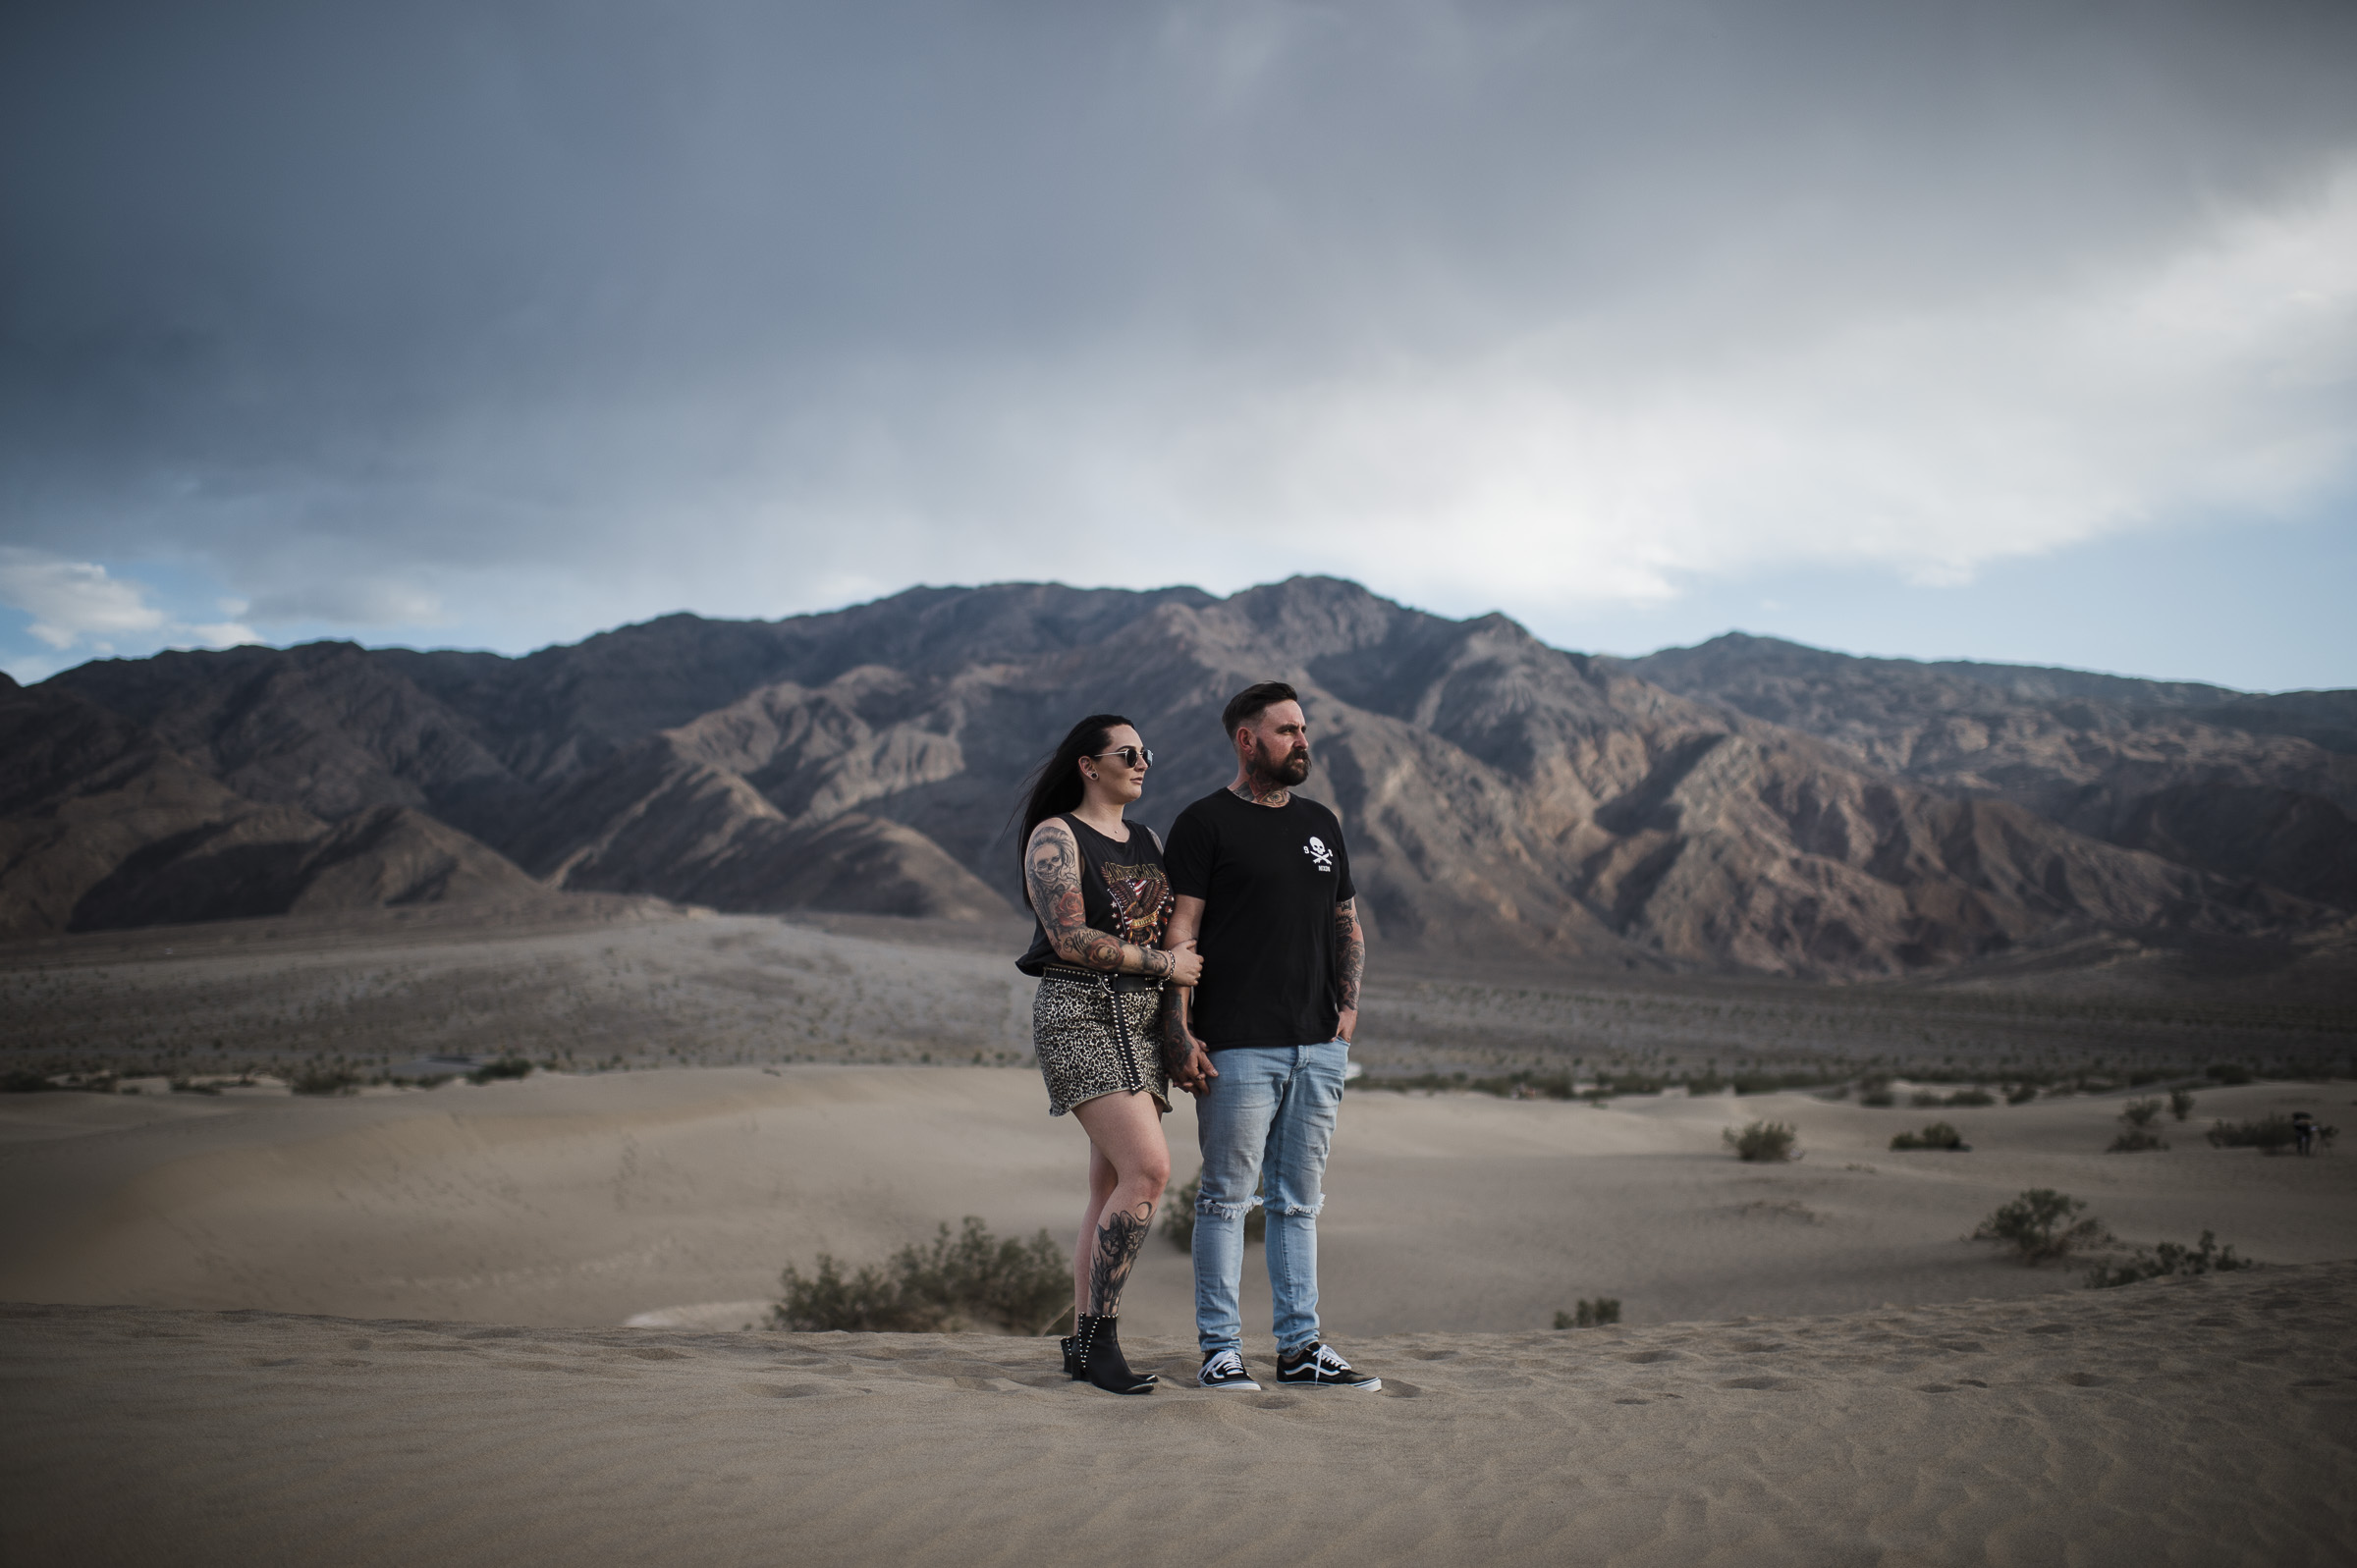 Stevie_Jake_USA_Vegas_Elopement_Photographer_Death_Valley_Blog-19.jpg